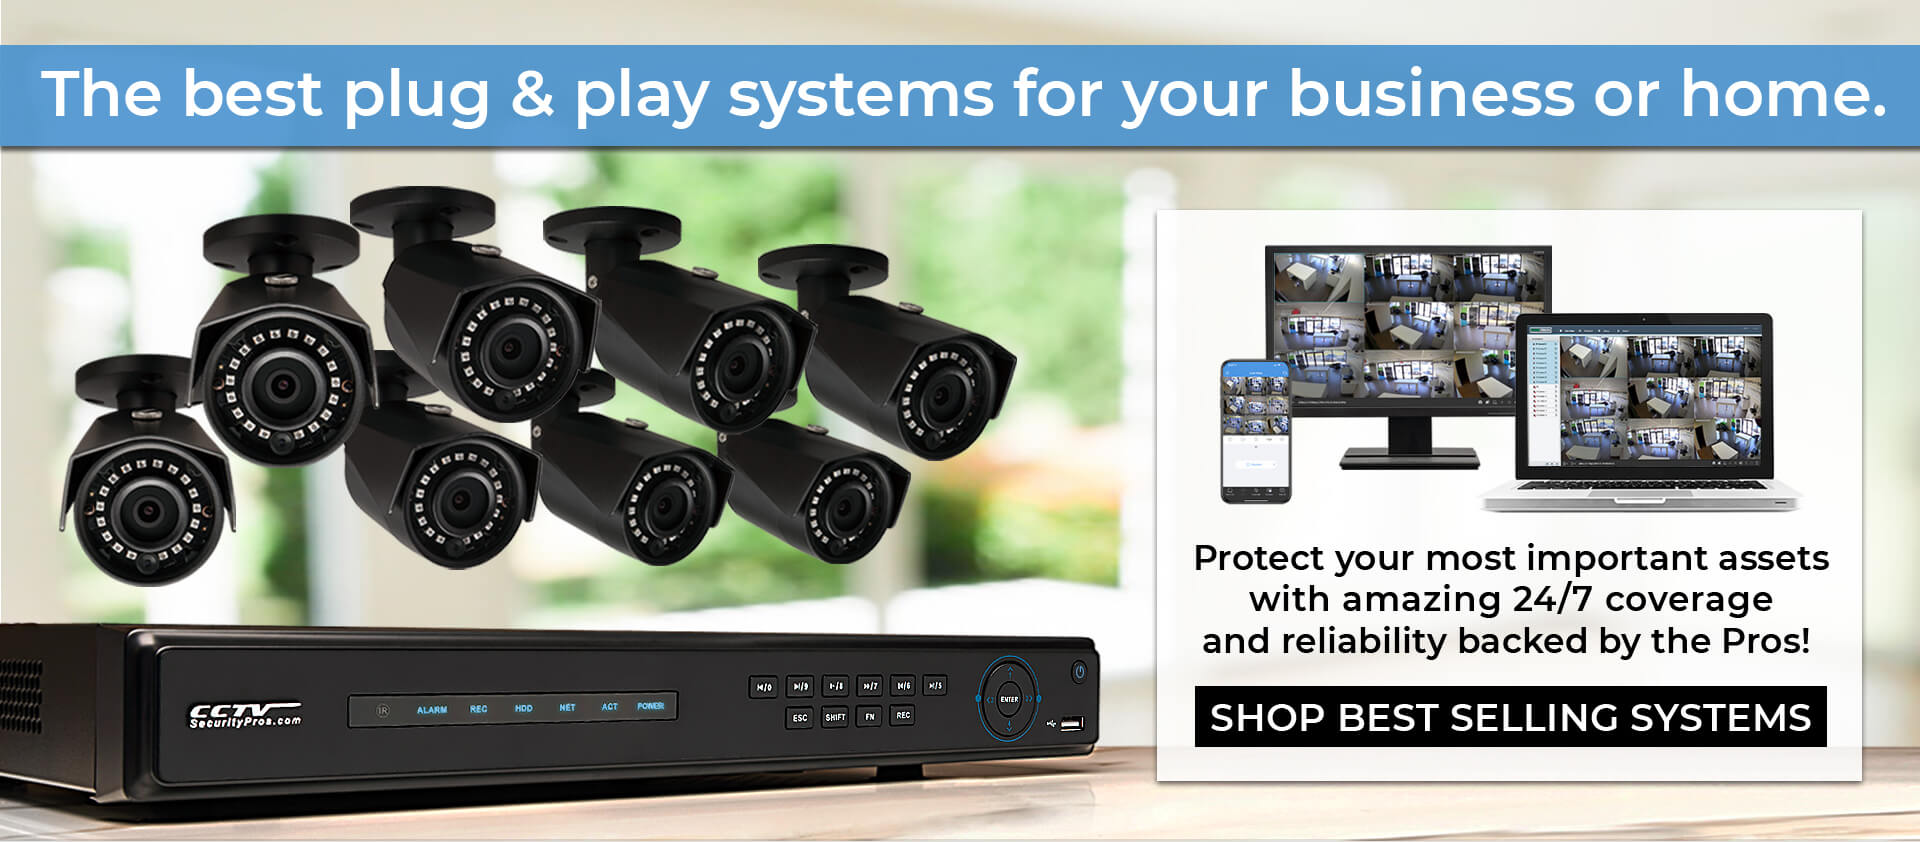 The best plug & play systems for your business or home